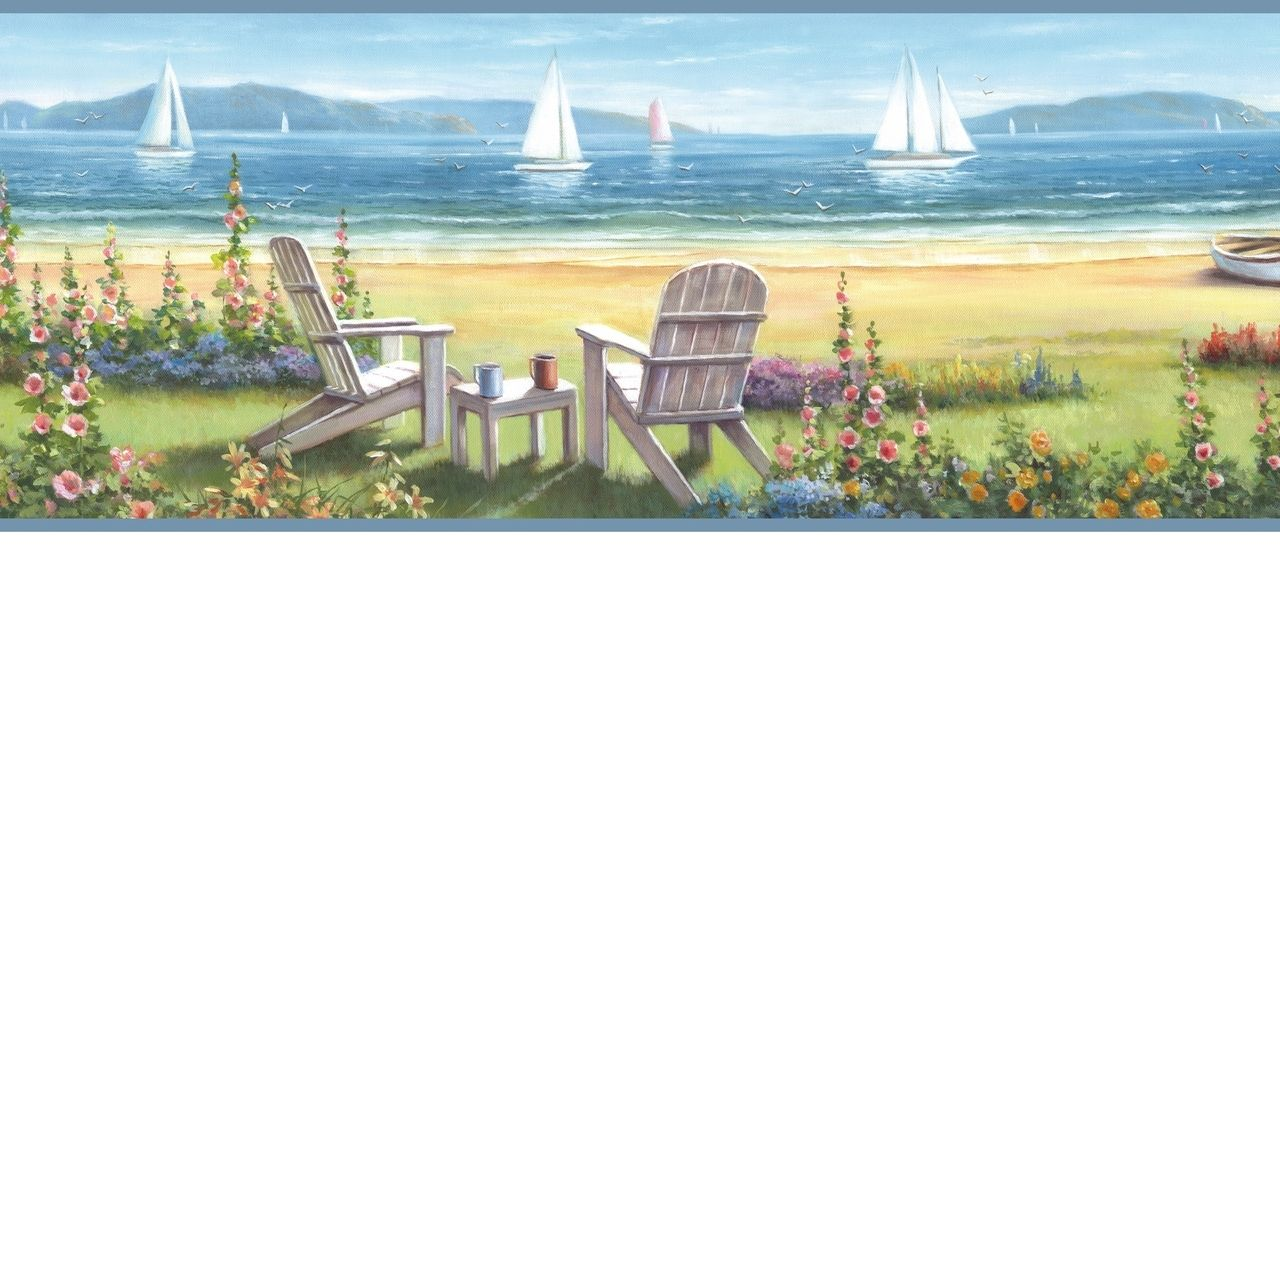 Borders By Chesapeake Seaside Cottage Wallpaper Border Bbc20021b Cottage Wallpaper Seaside Cottage Beach Cottages